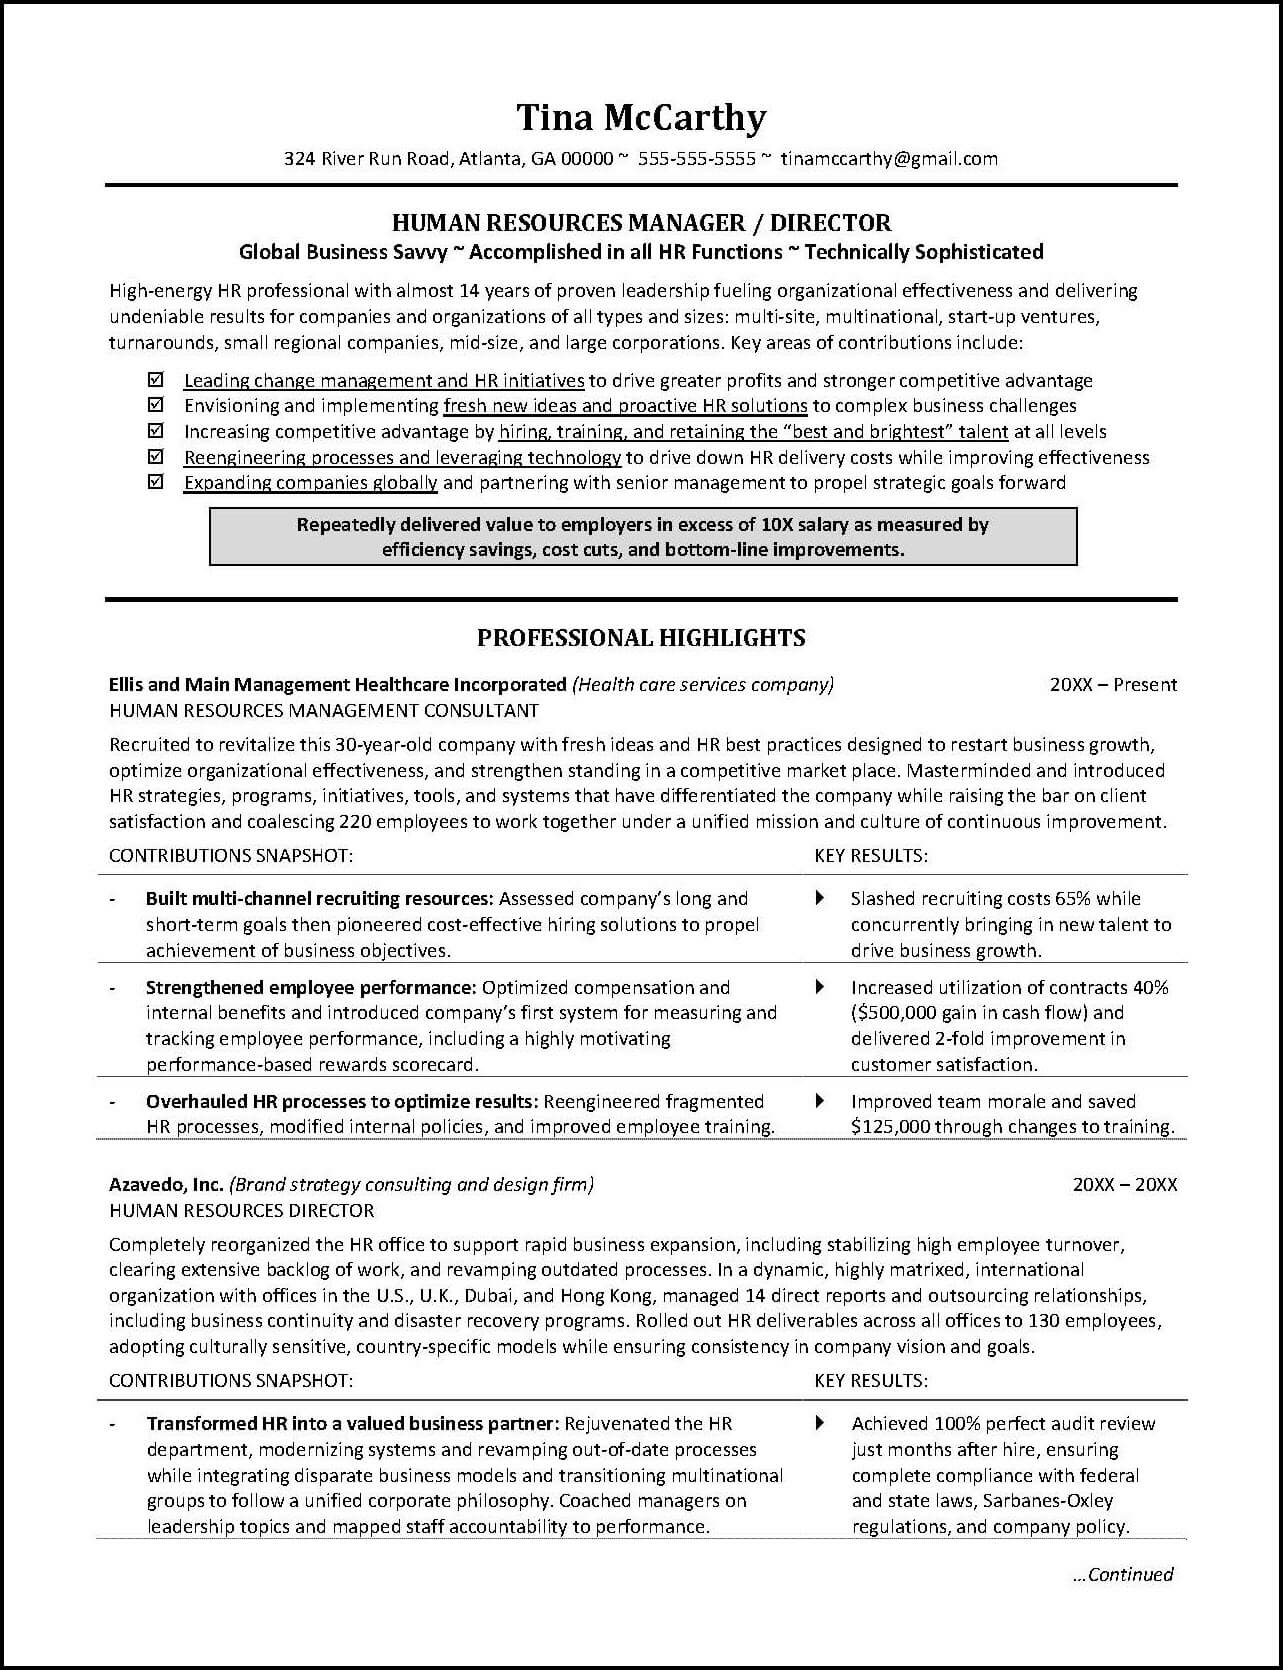 Example of managing director resume